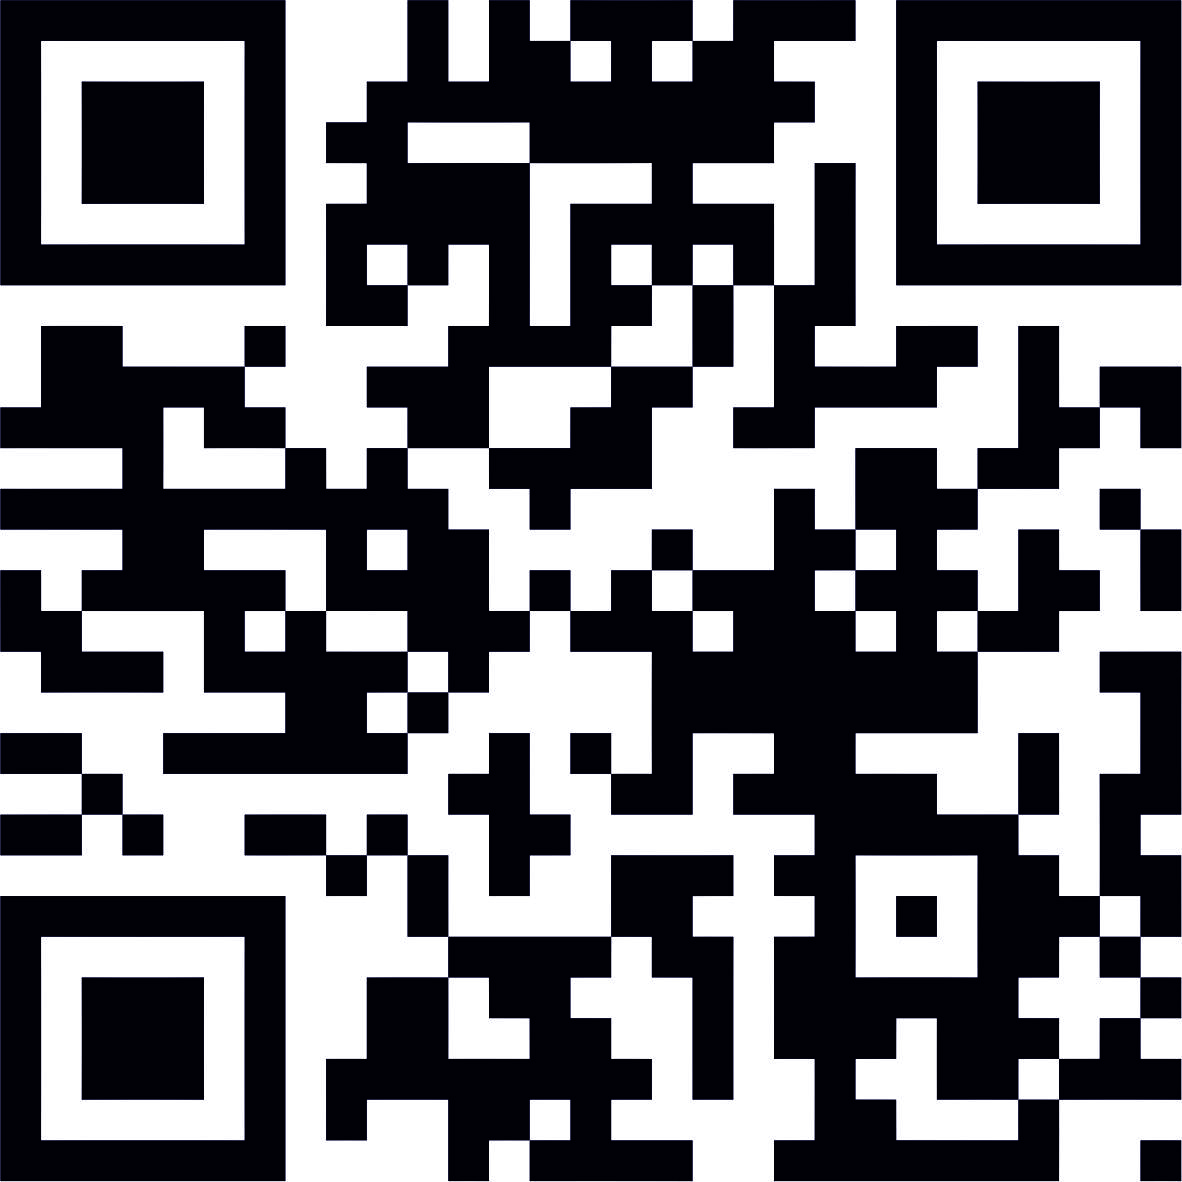 QR Code als Marketing Instrument ?